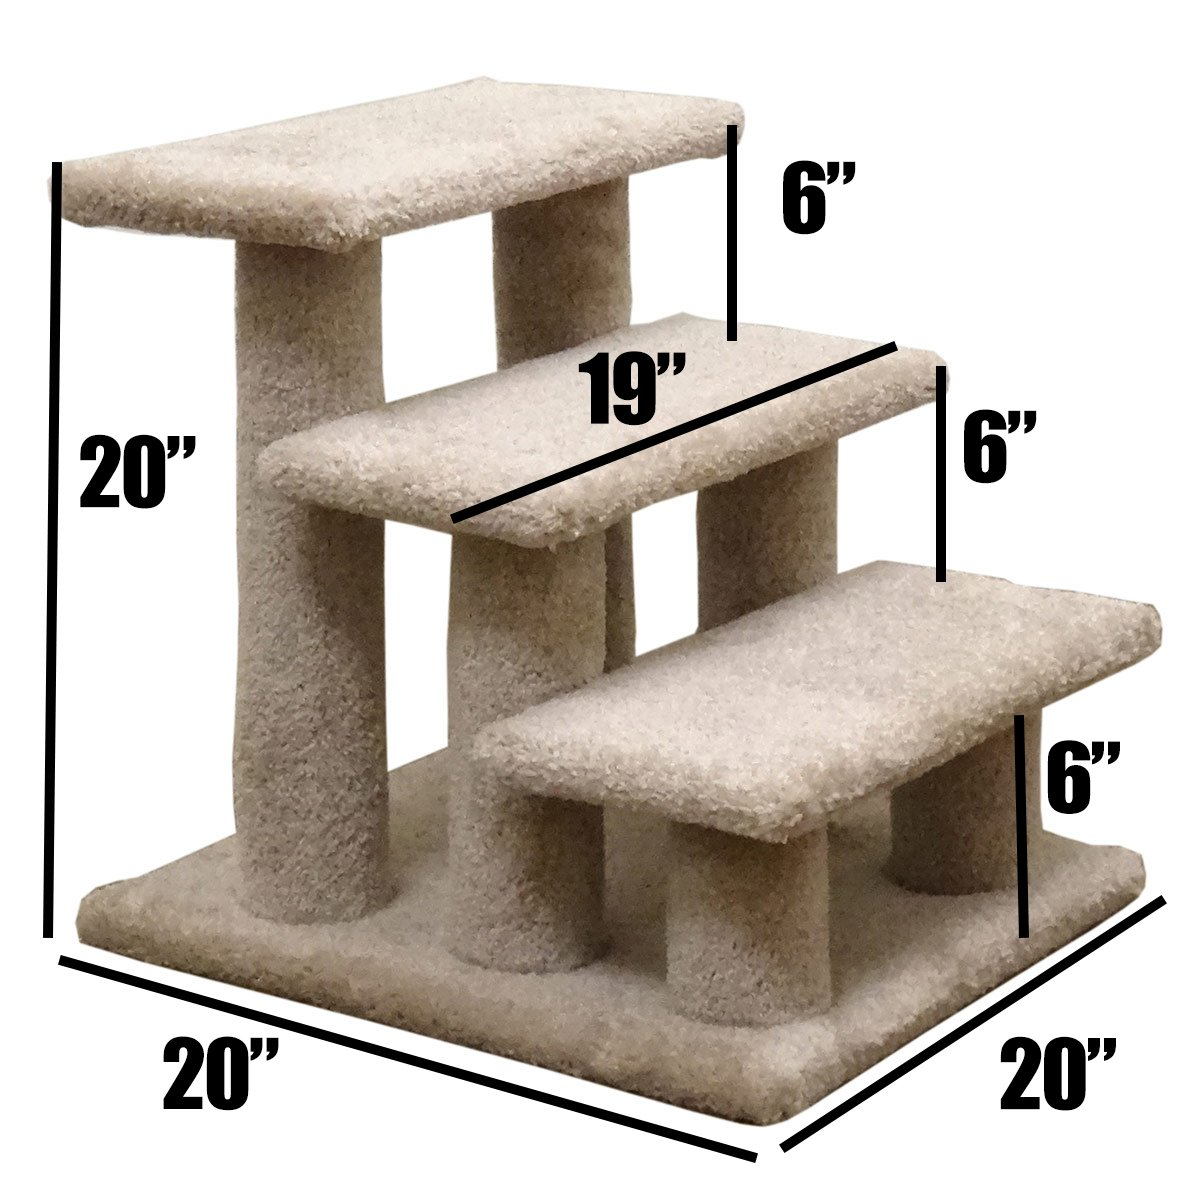 New Cat Condos Premier Post Stairs